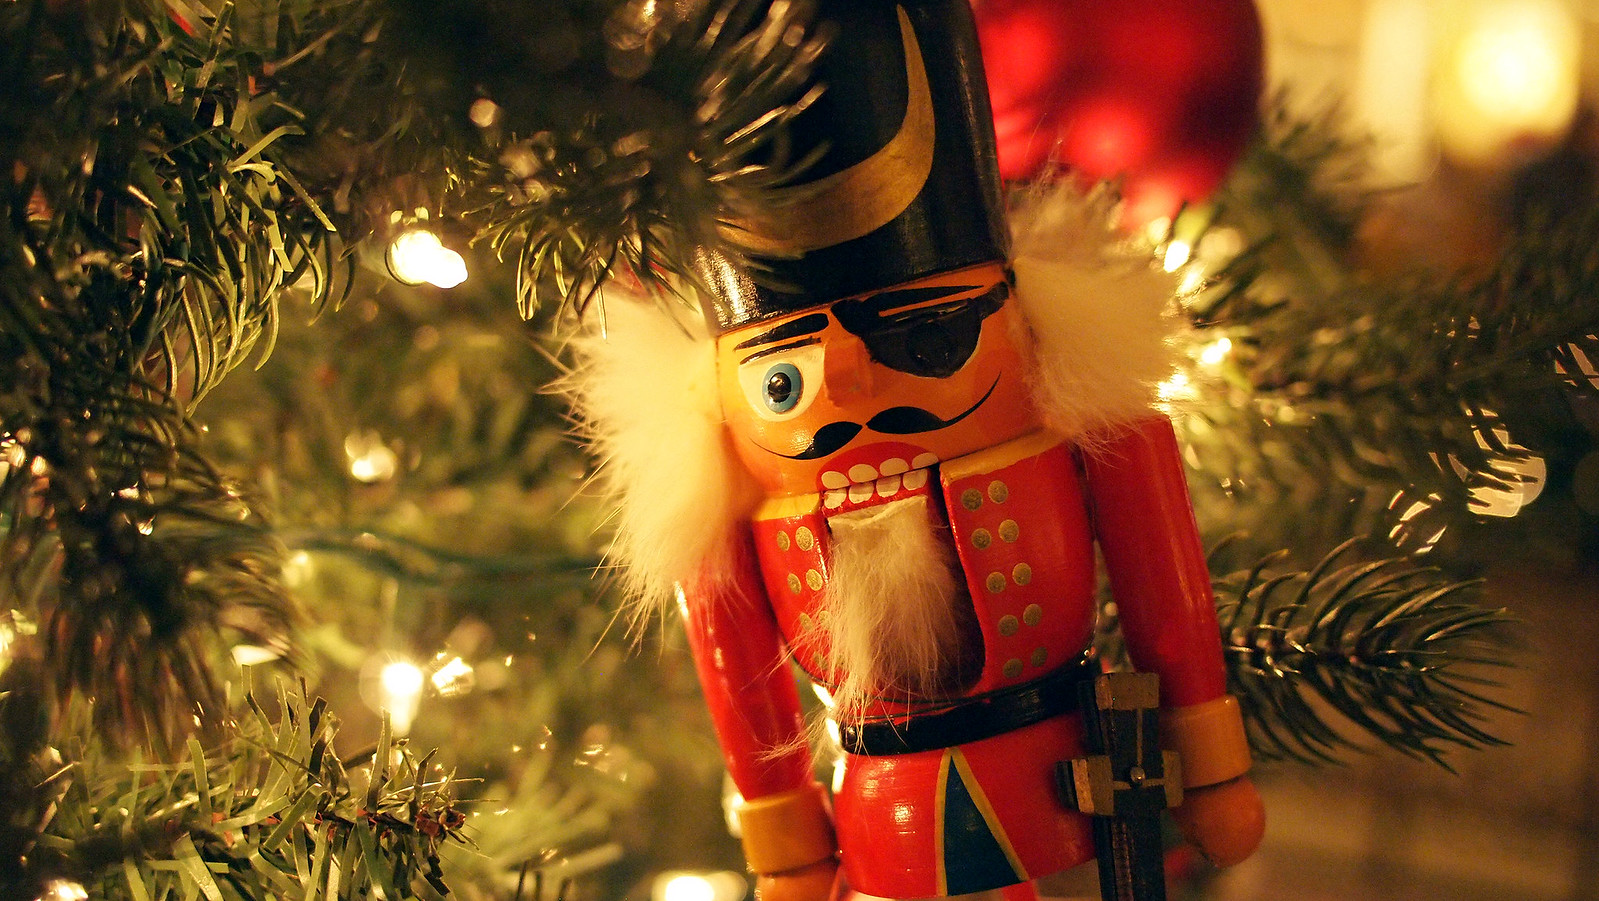 Christmas Toy Soldier